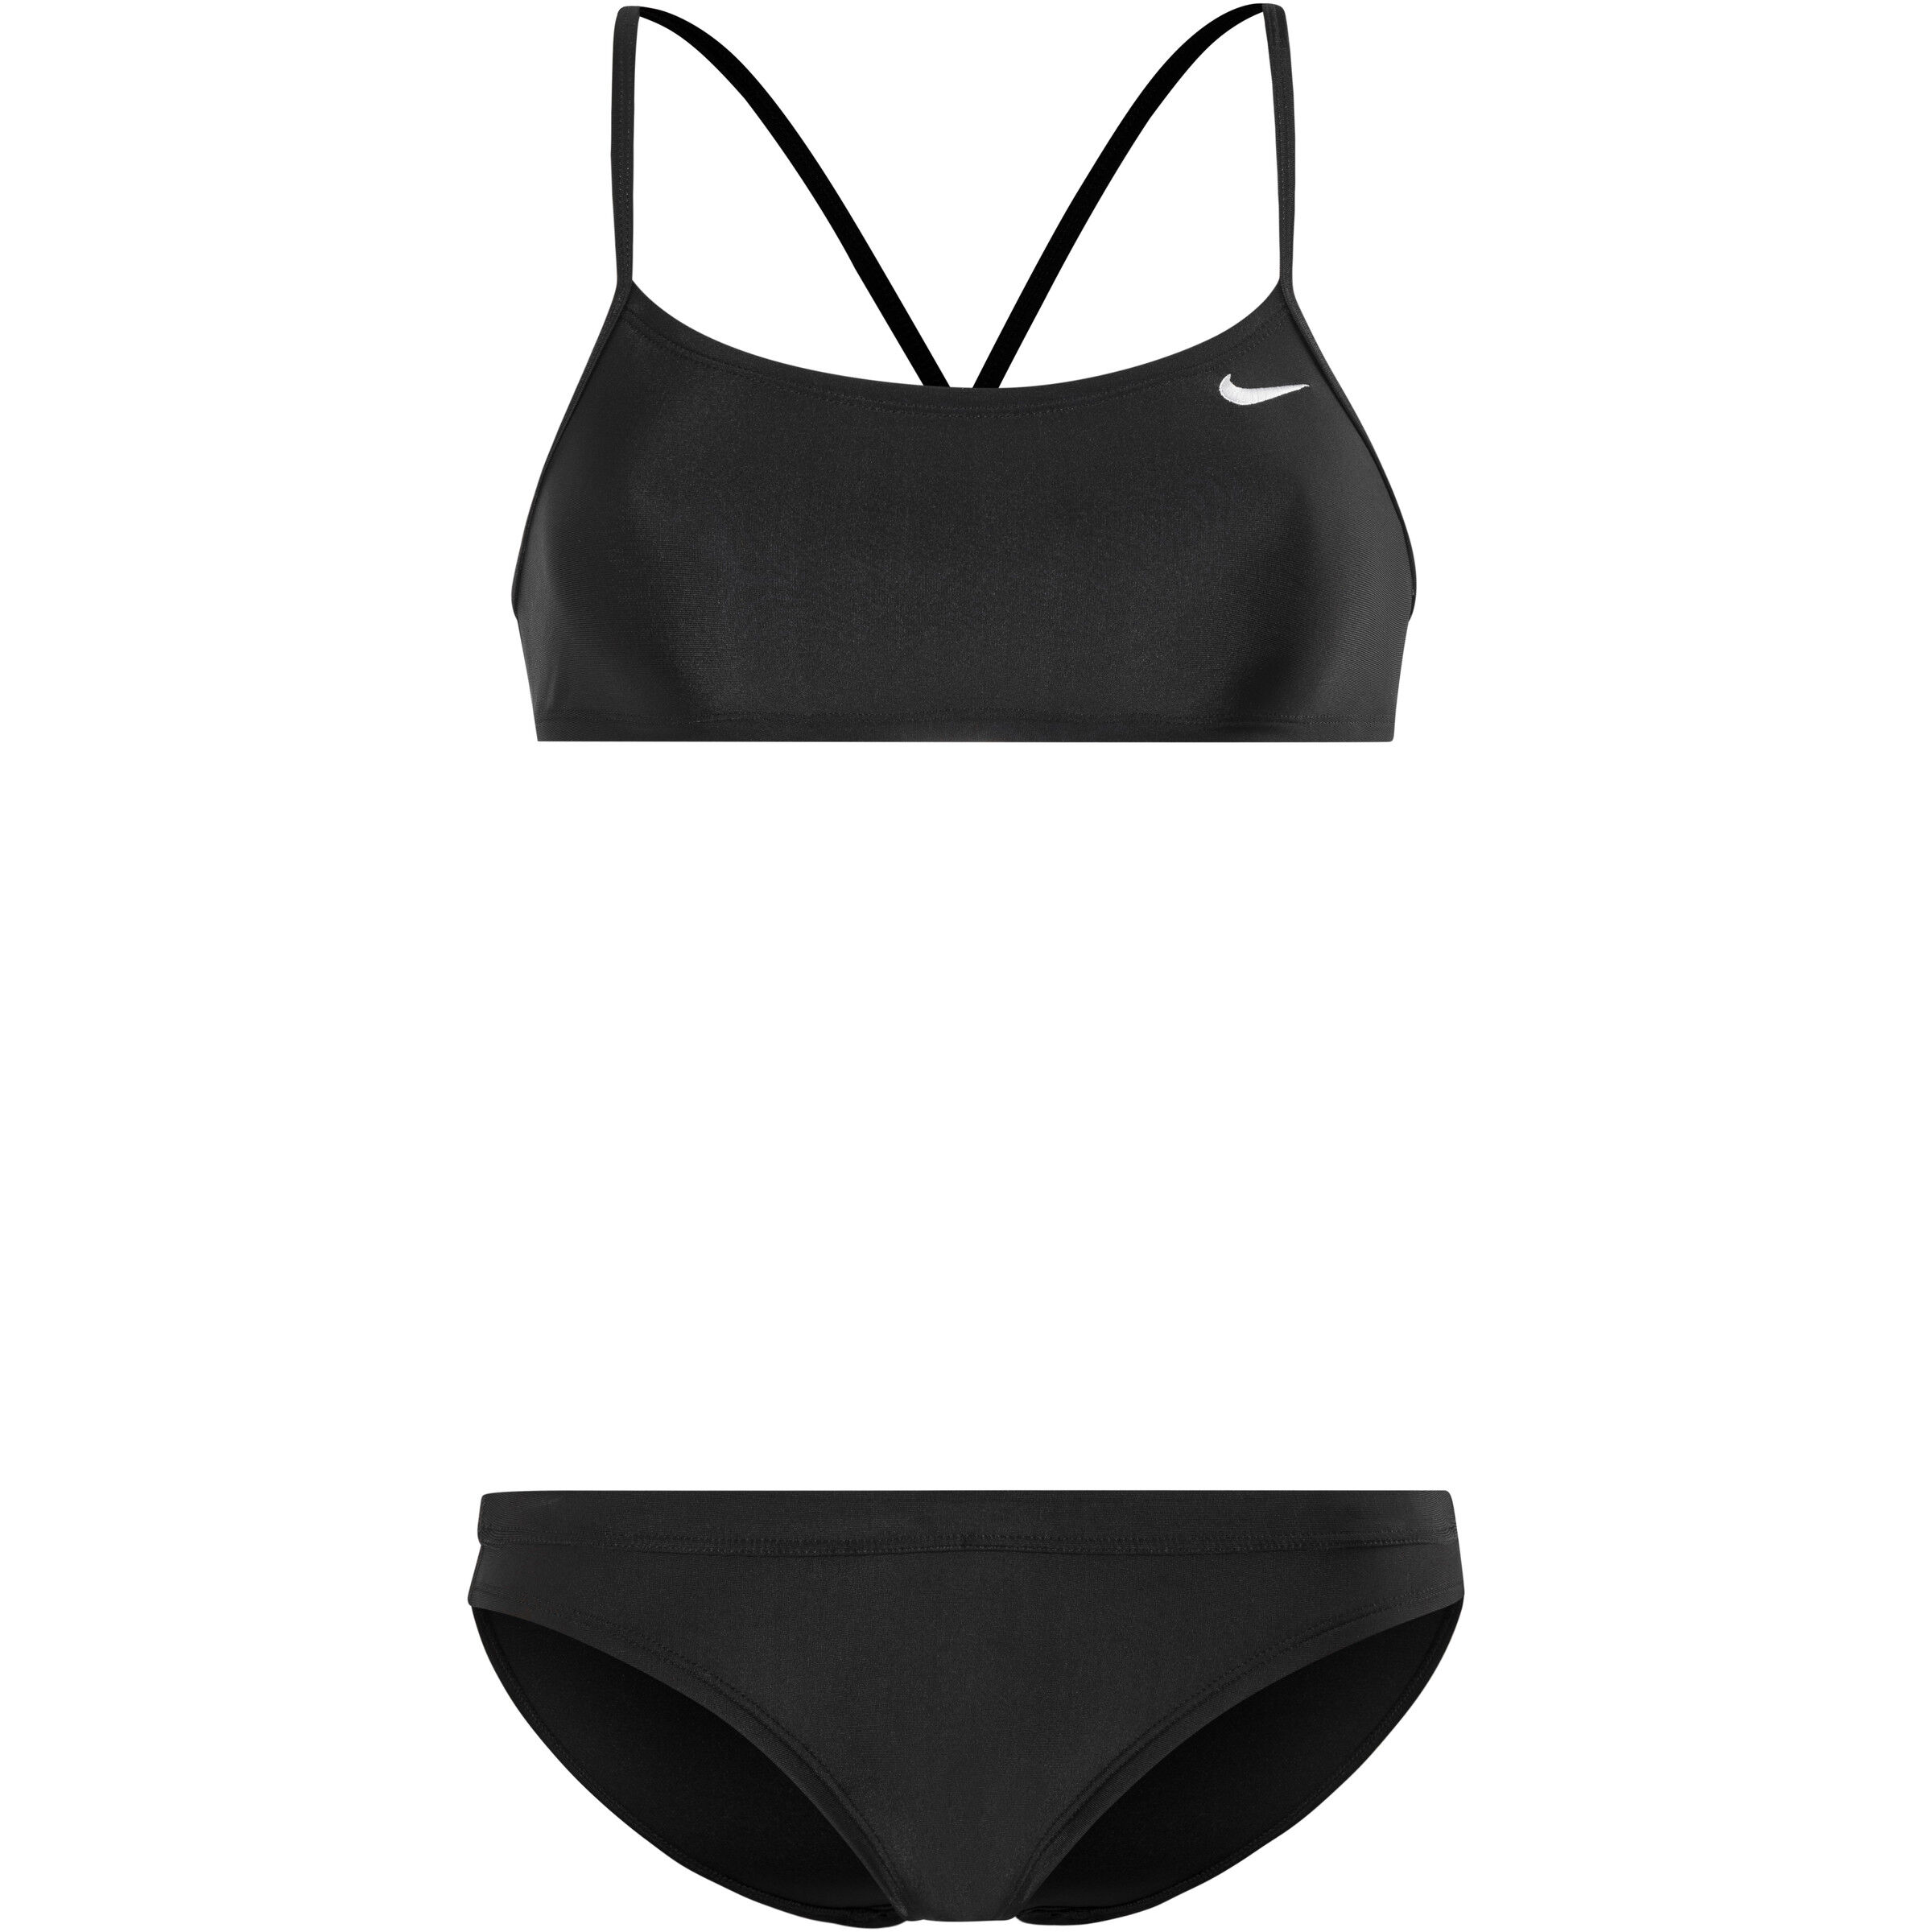 Racerback Bottom Nike TopSport Bikini blackblack Swim Solid Damen jqc4ARL35